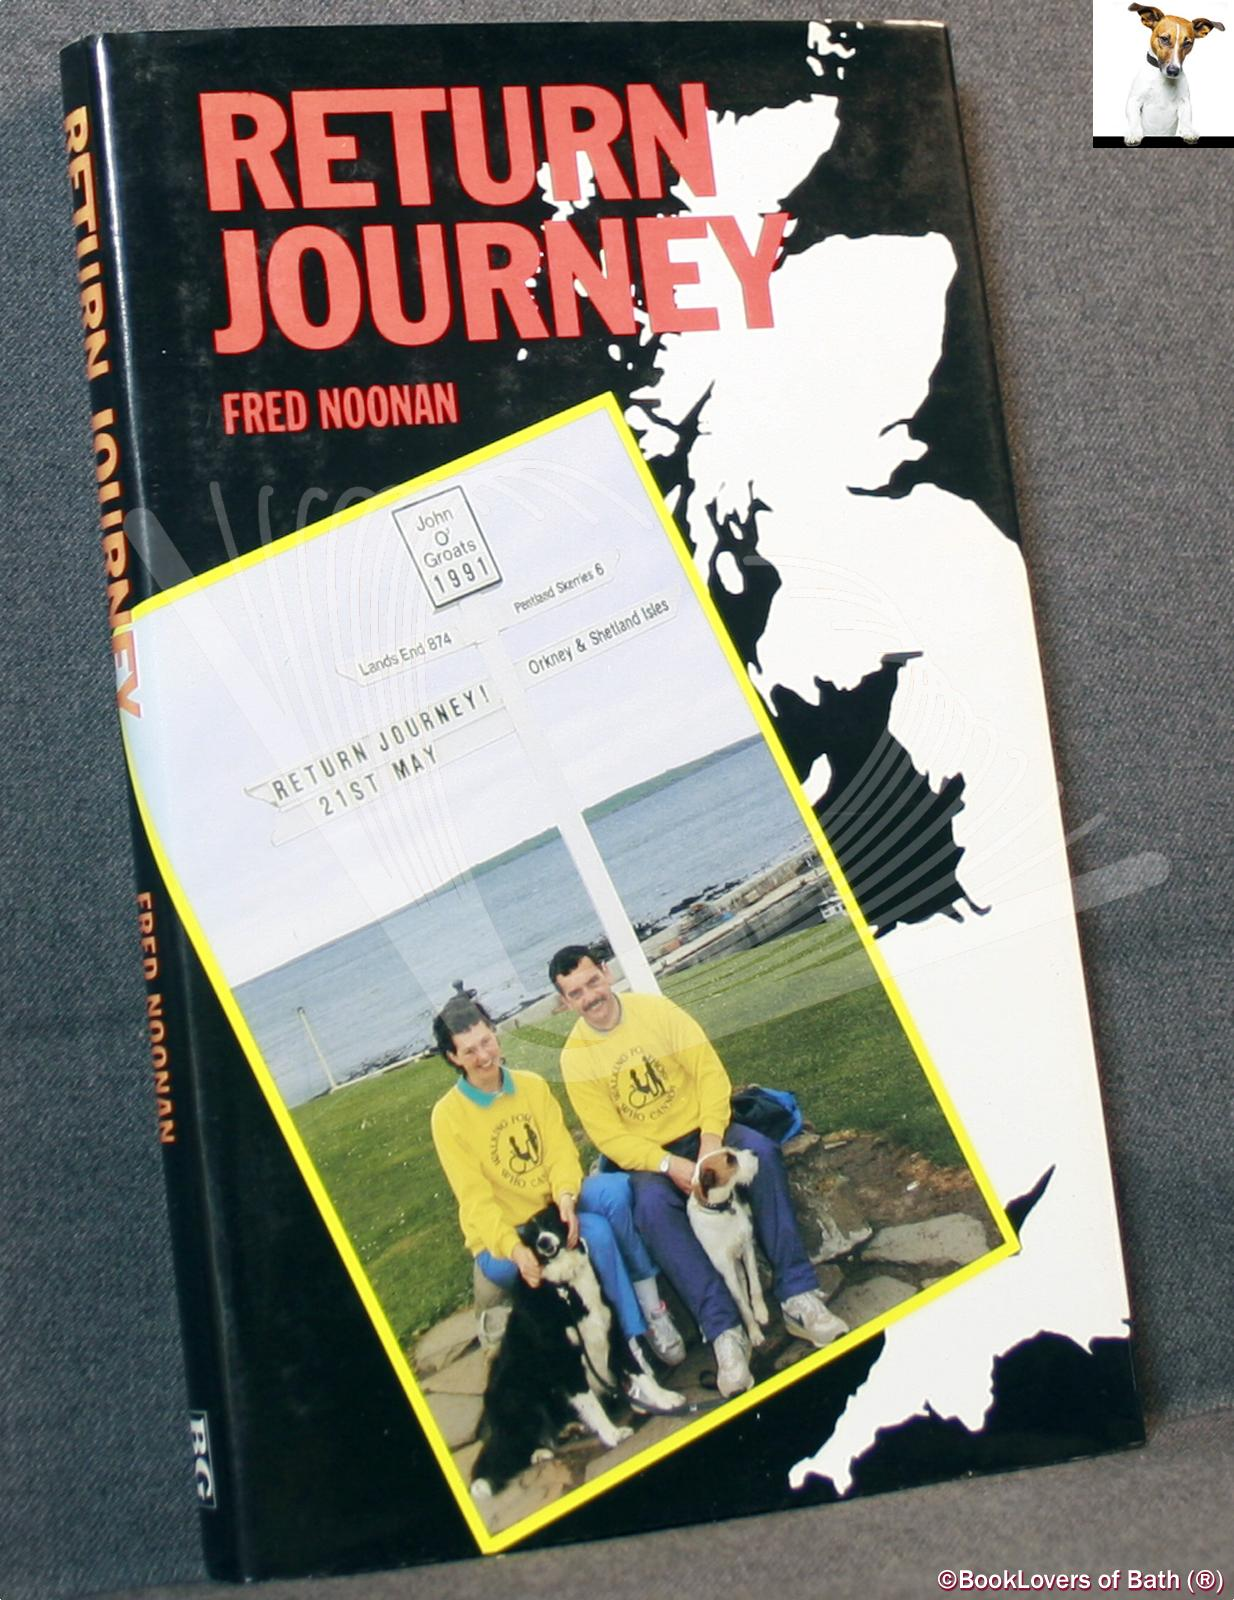 Return Journey - Fred Noonan